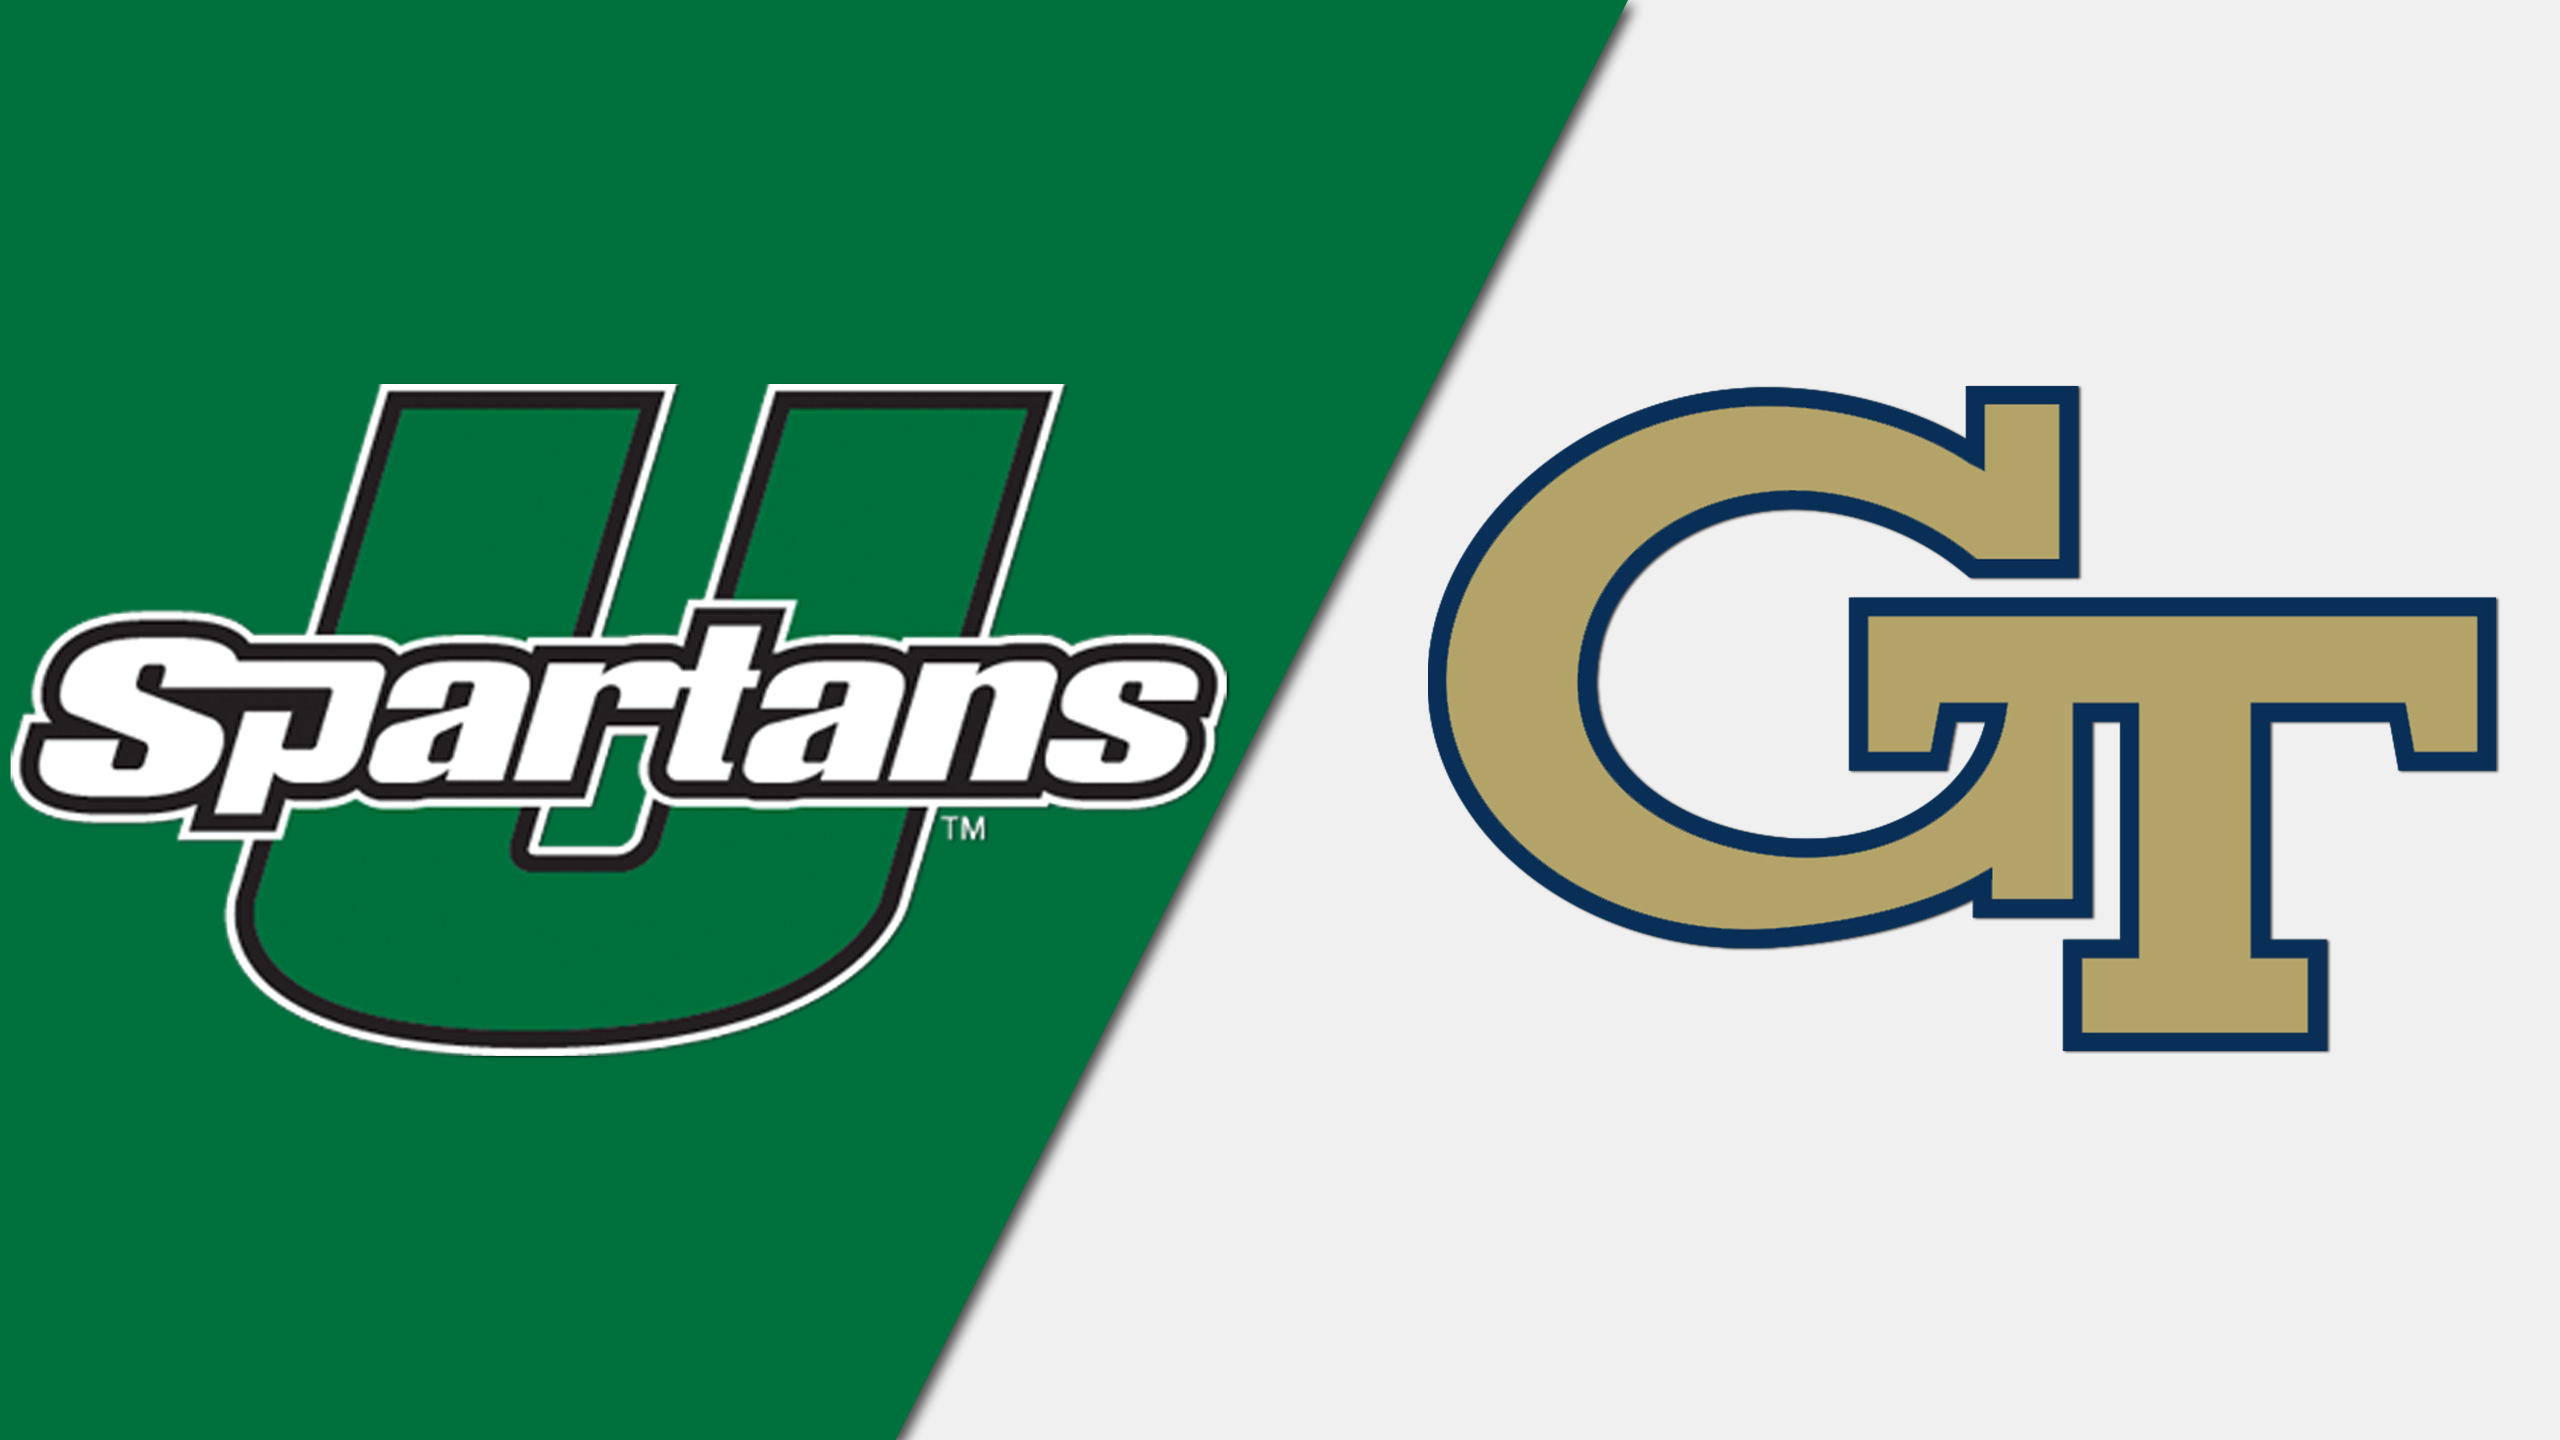 USC Upstate vs. Georgia Tech (M Basketball)